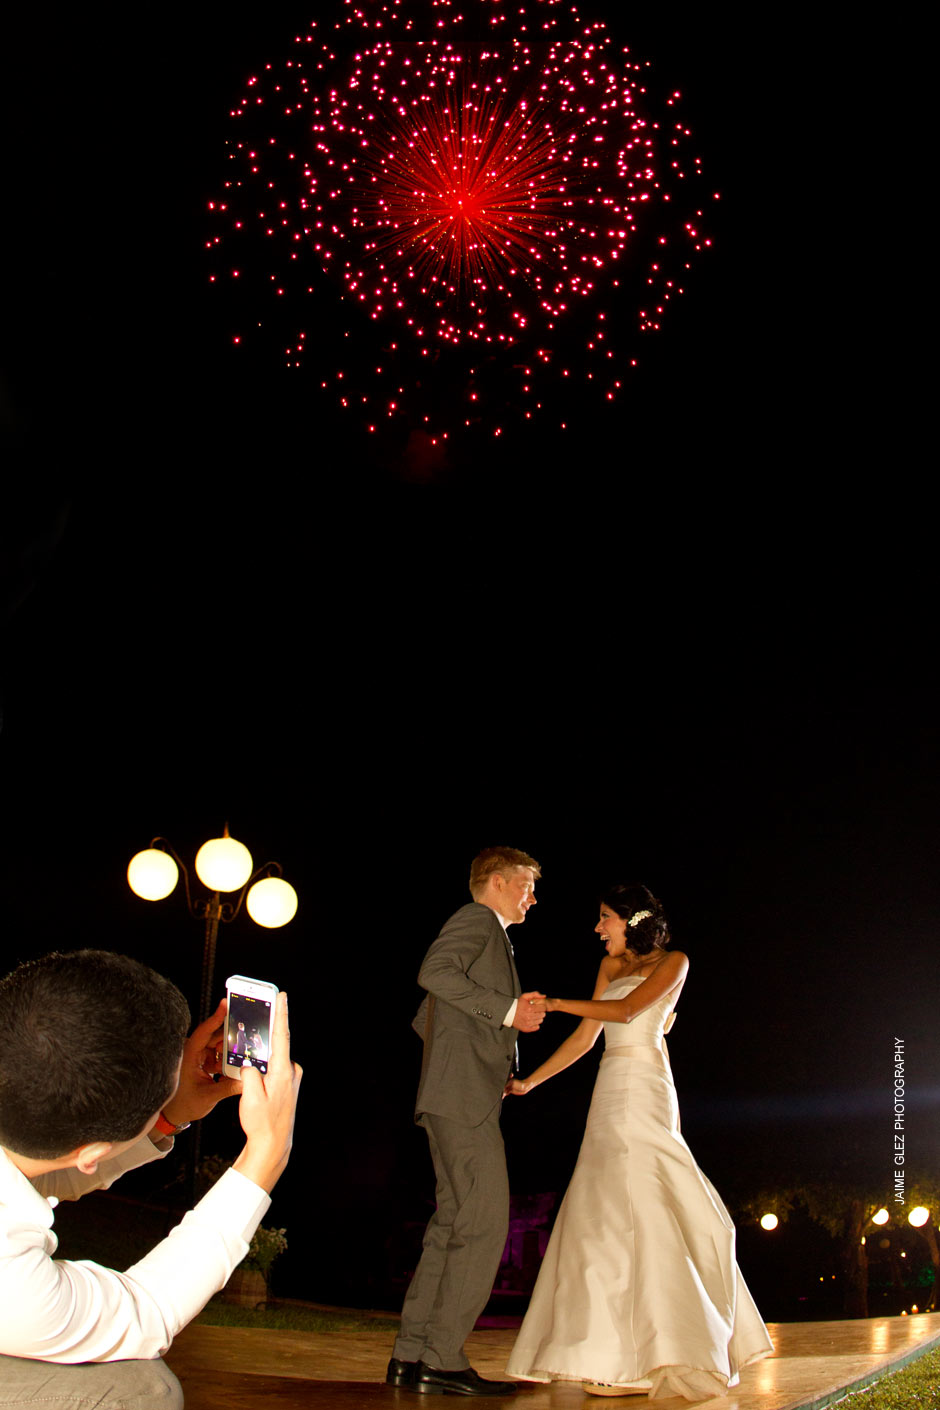 And to continue the celebration, fireworks was the ultimate surprise for the guests and the newlyweds.